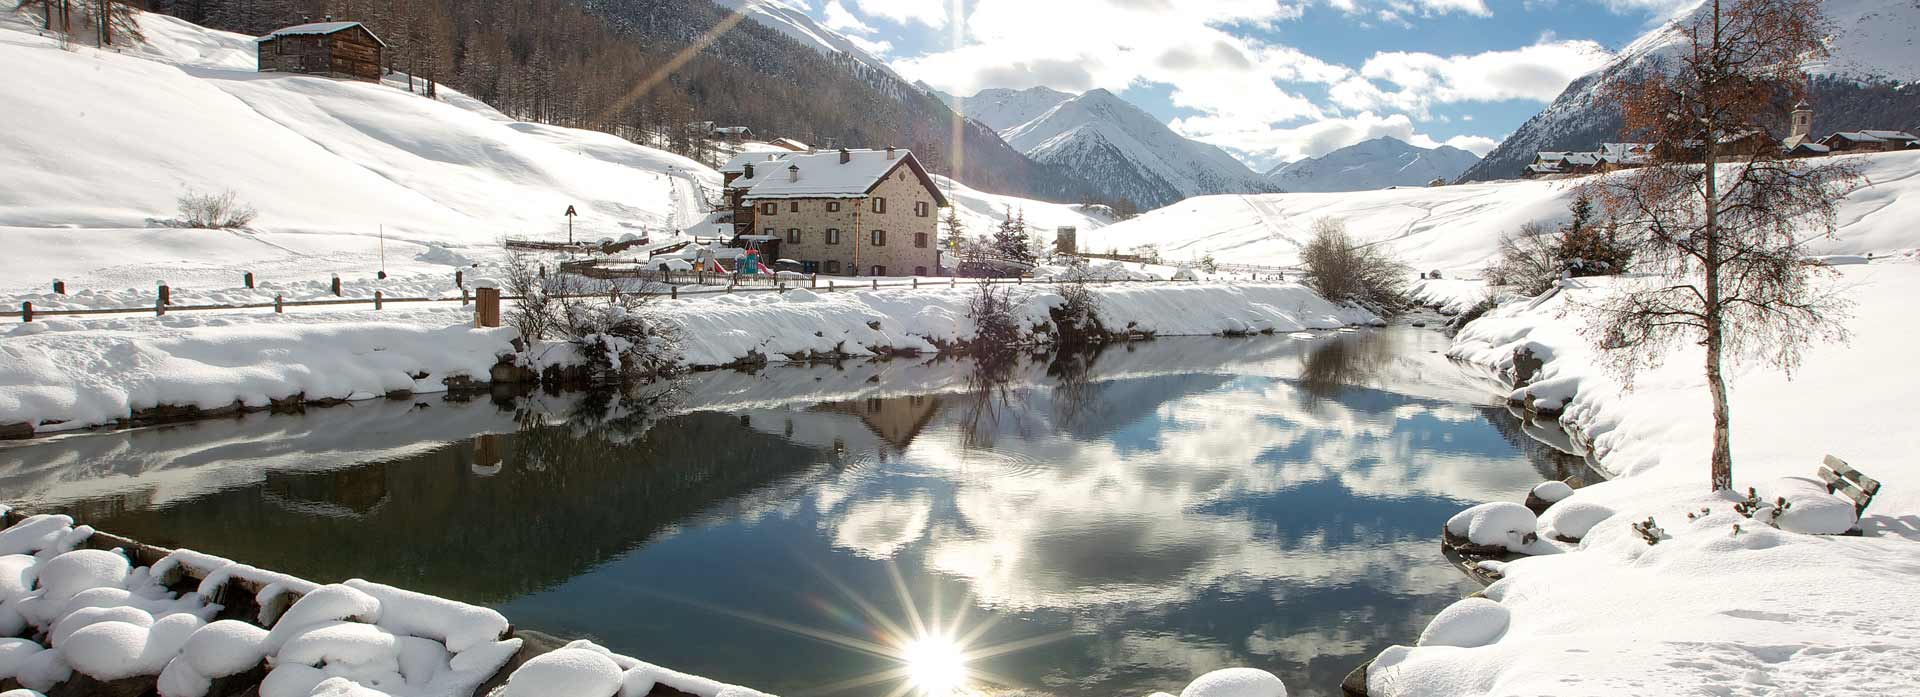 Livigno Best Ski holiday lake snowy landscape winter sun holiday home